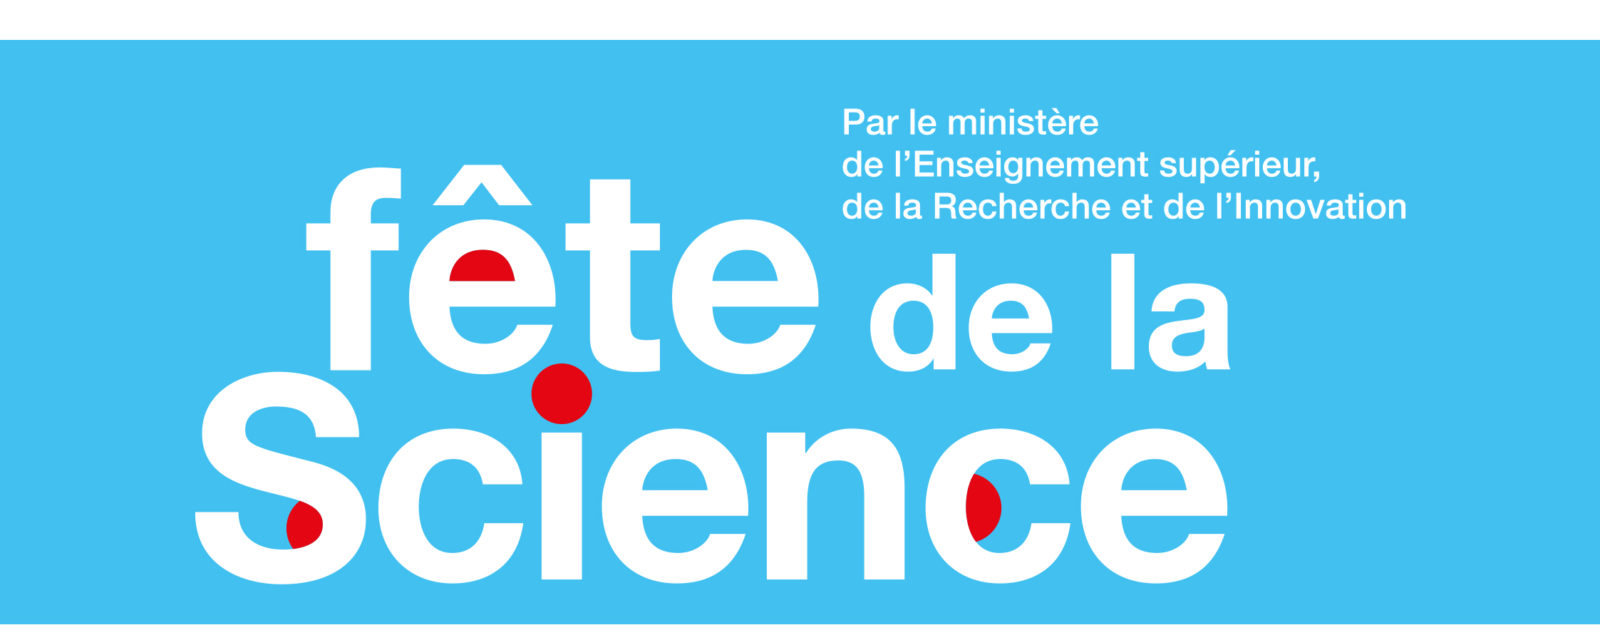 La Fête de la science 2019 :